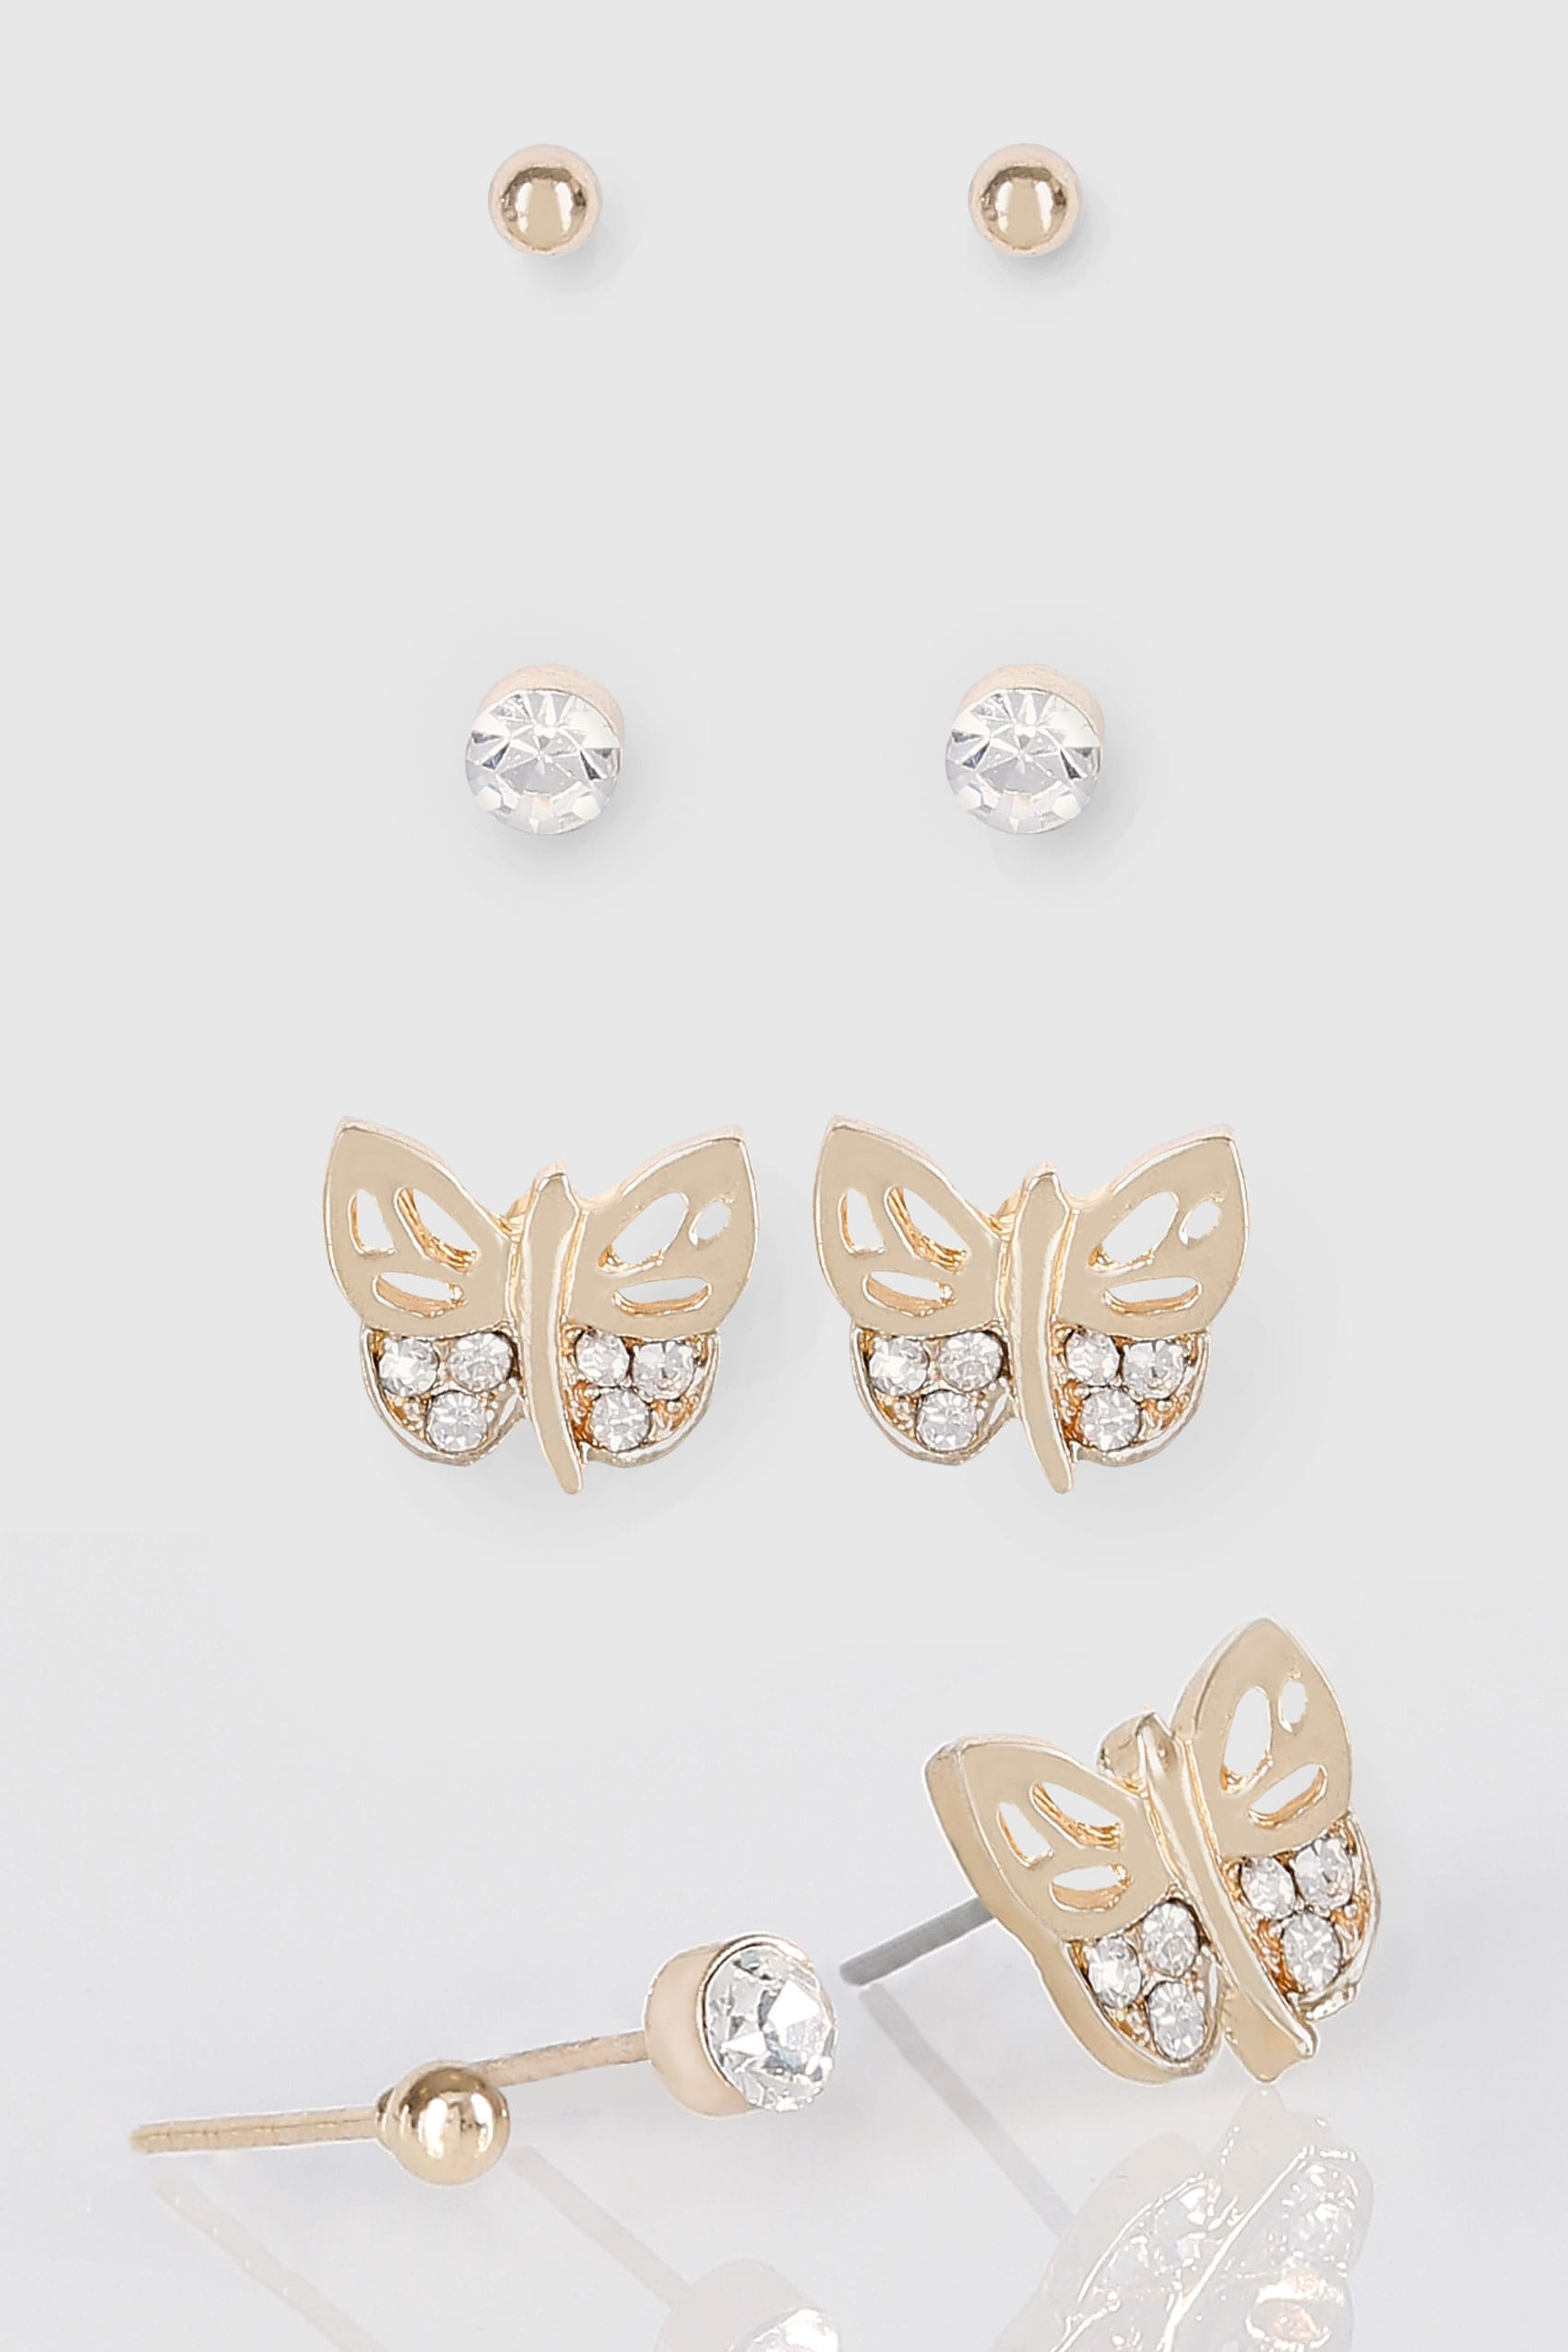 eco graff christie christies jewellery online stud earrings diamond jewels s